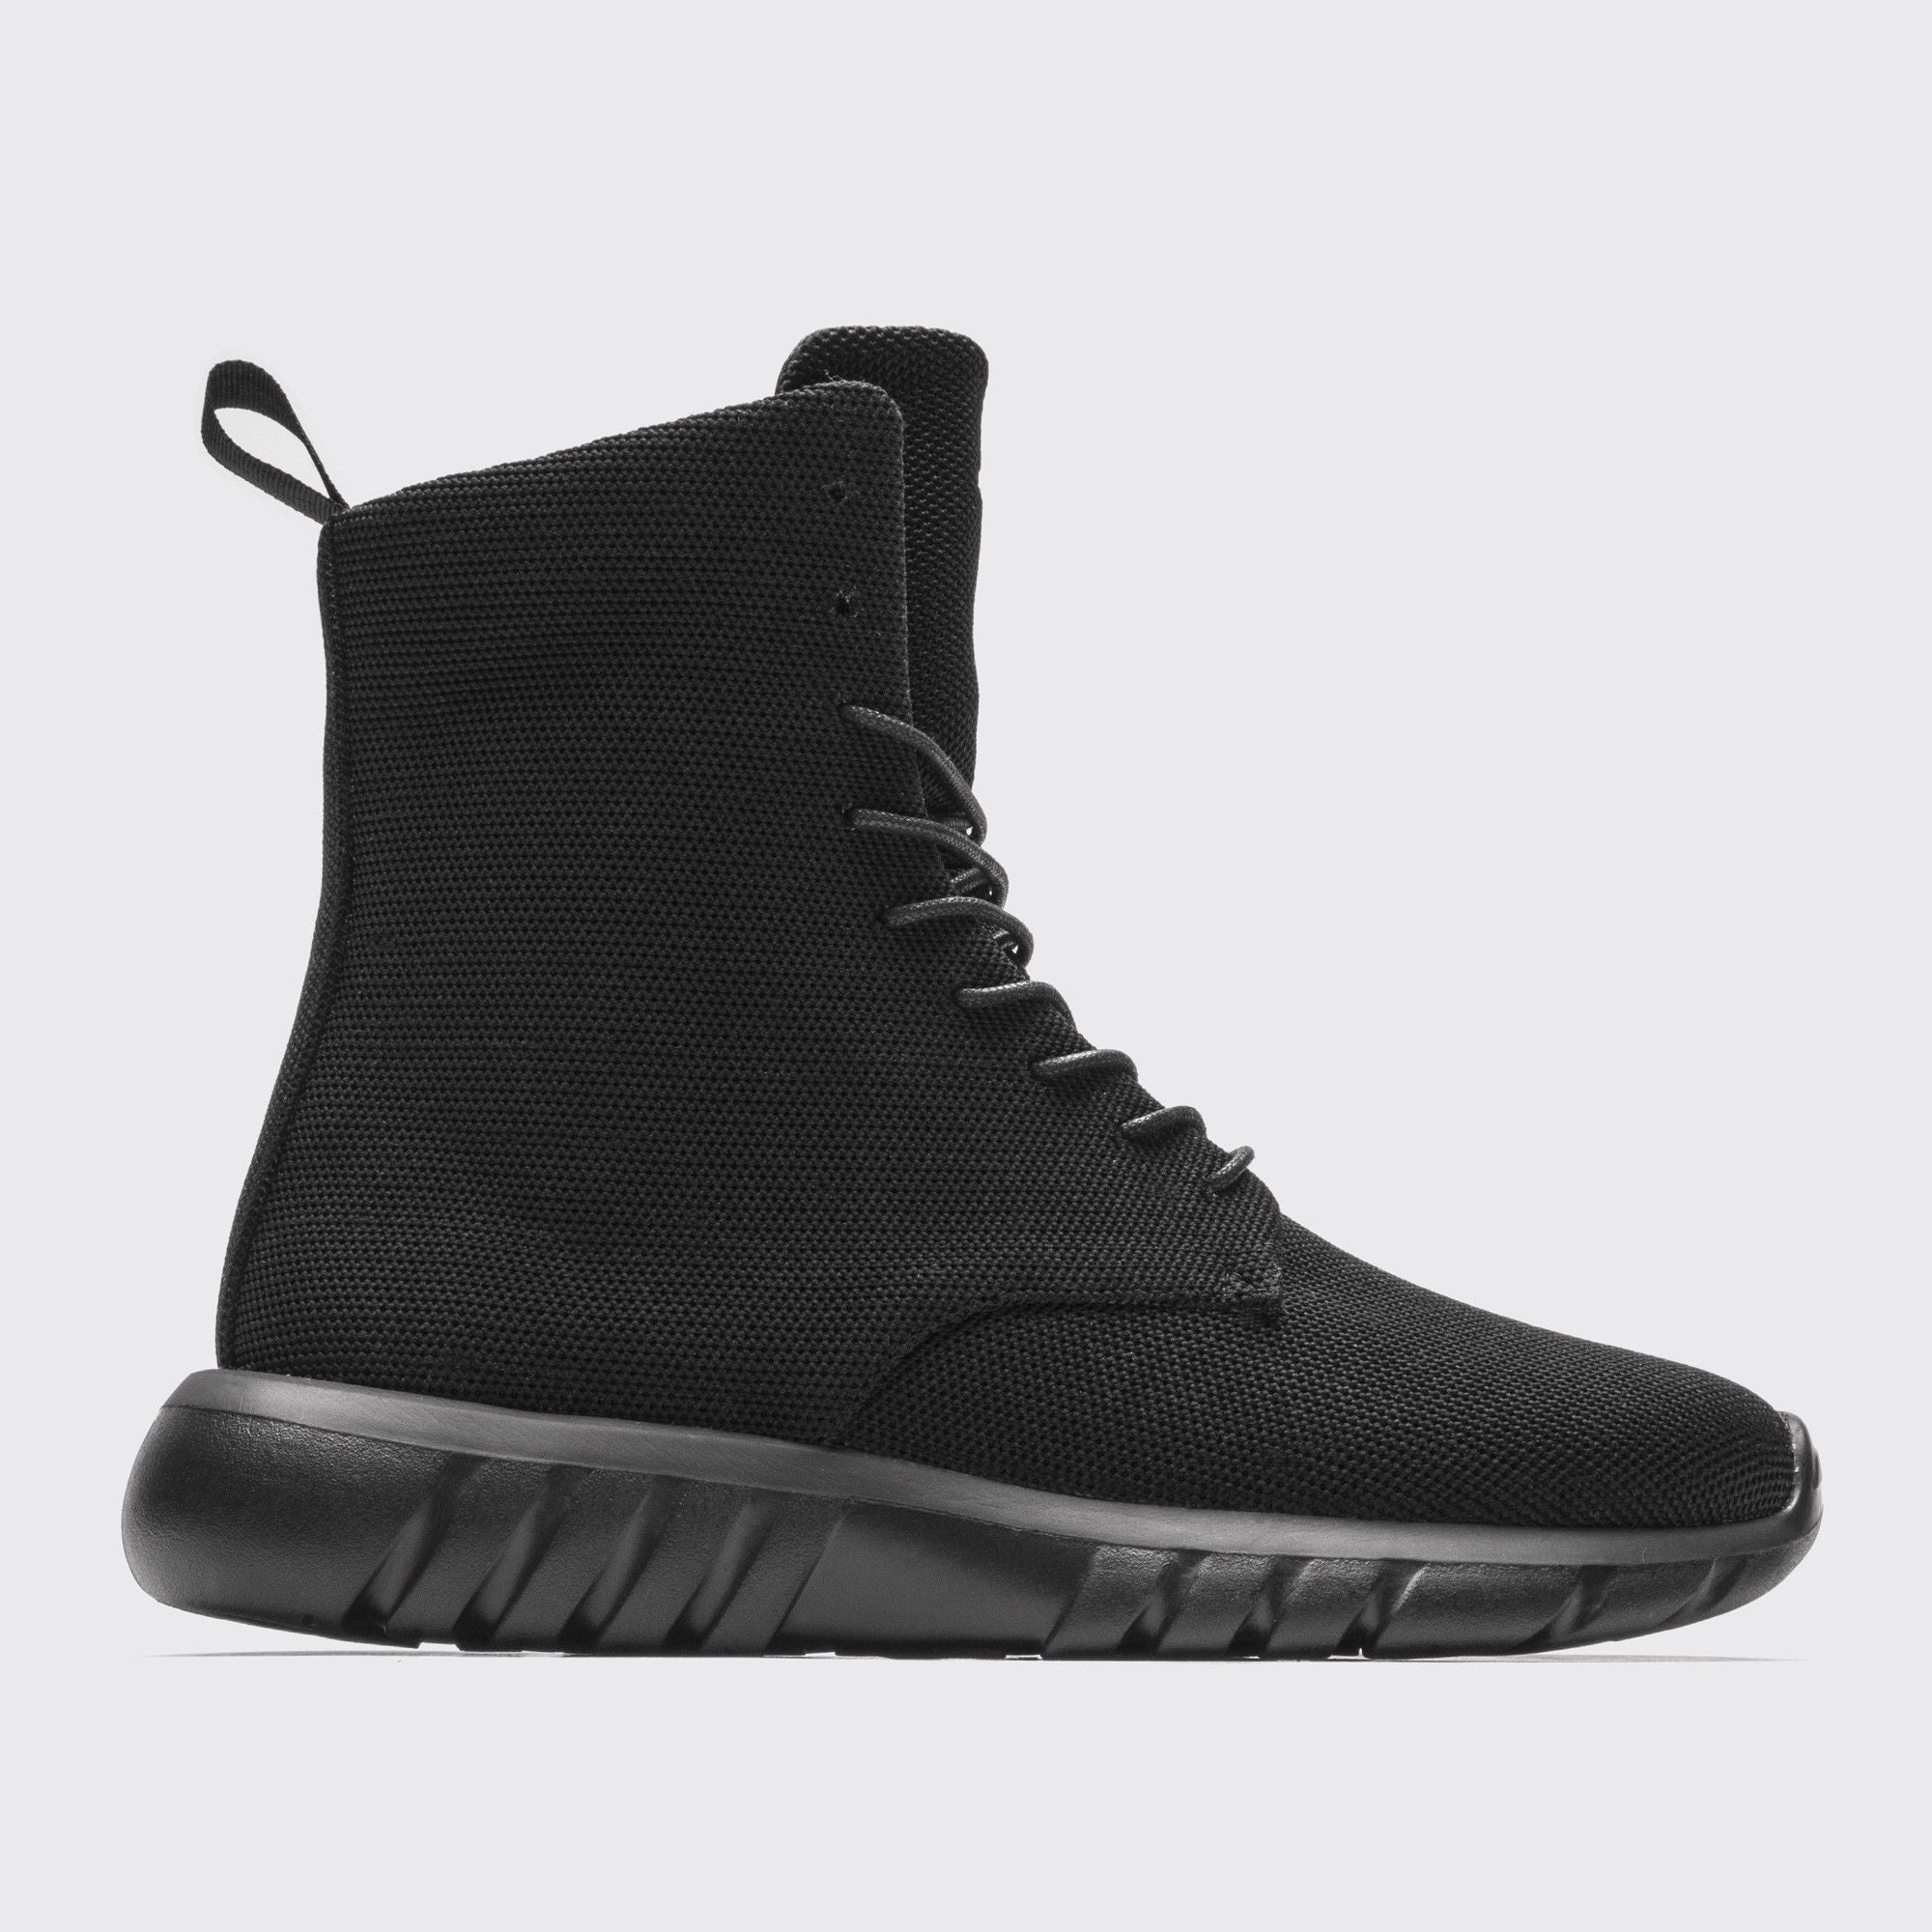 f252a9f13de93 NINJA | Black Knit - Micro Knit High Top Boot on Runner Sole ...